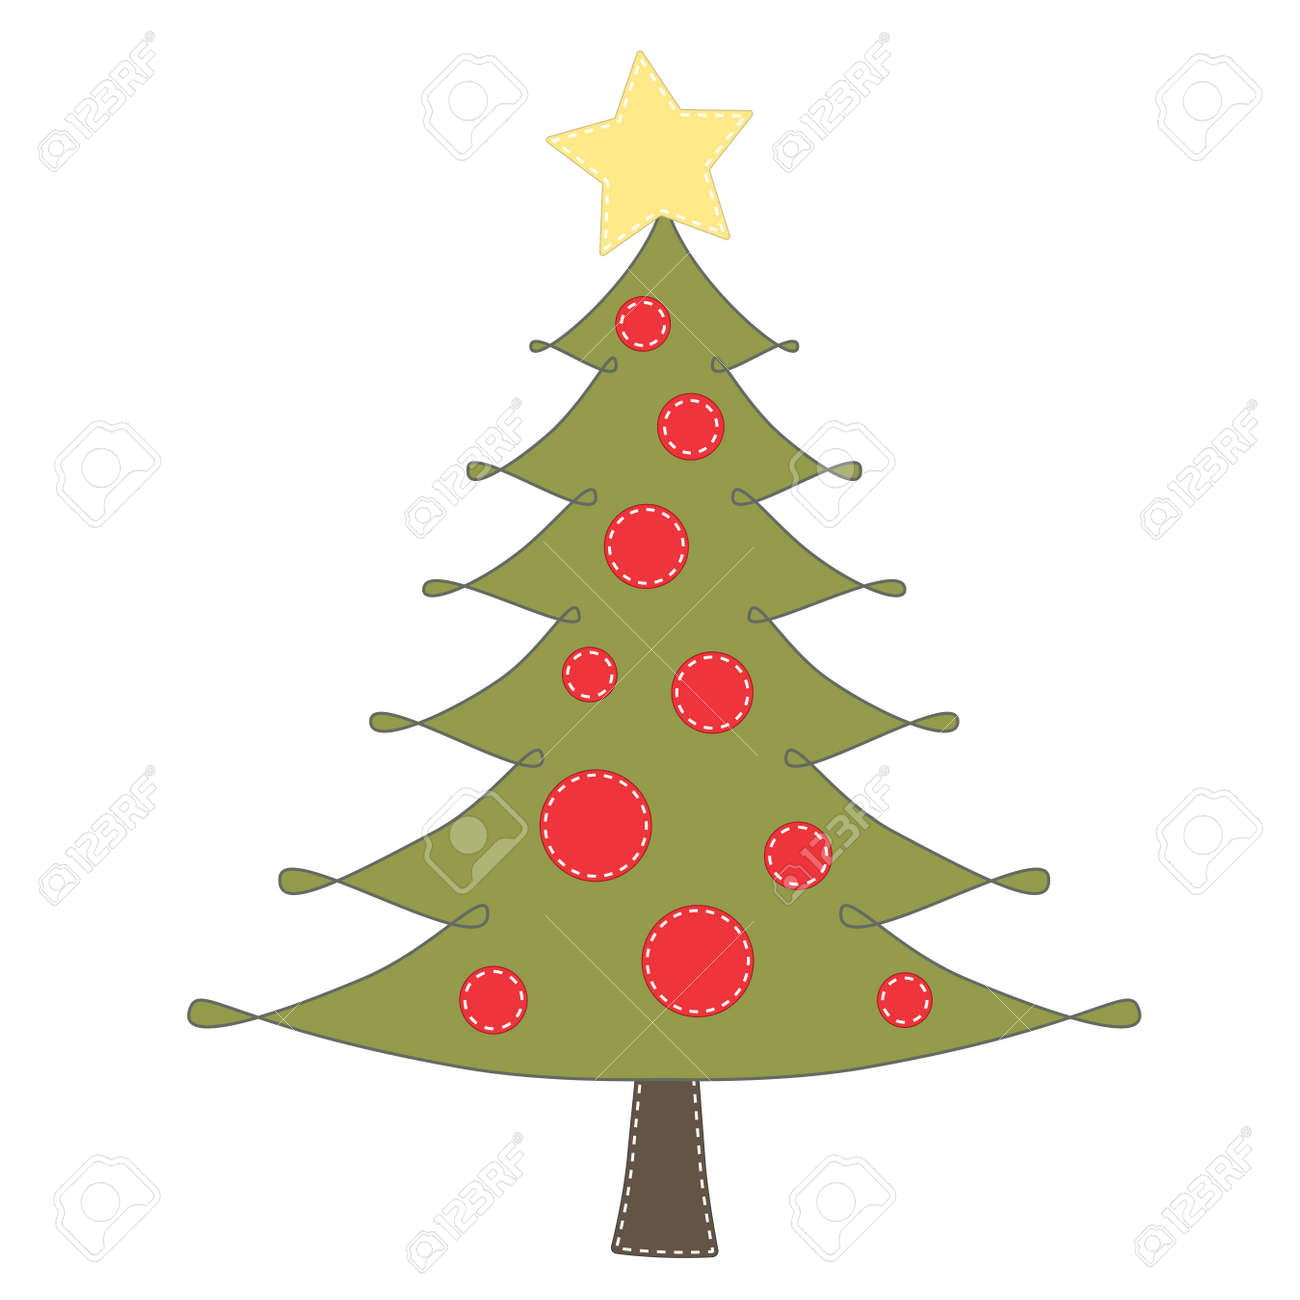 Christmas Tree Clip Art On Transparent Background For Scrapbooking in Christmas Clip Art Transparent Backgrounds